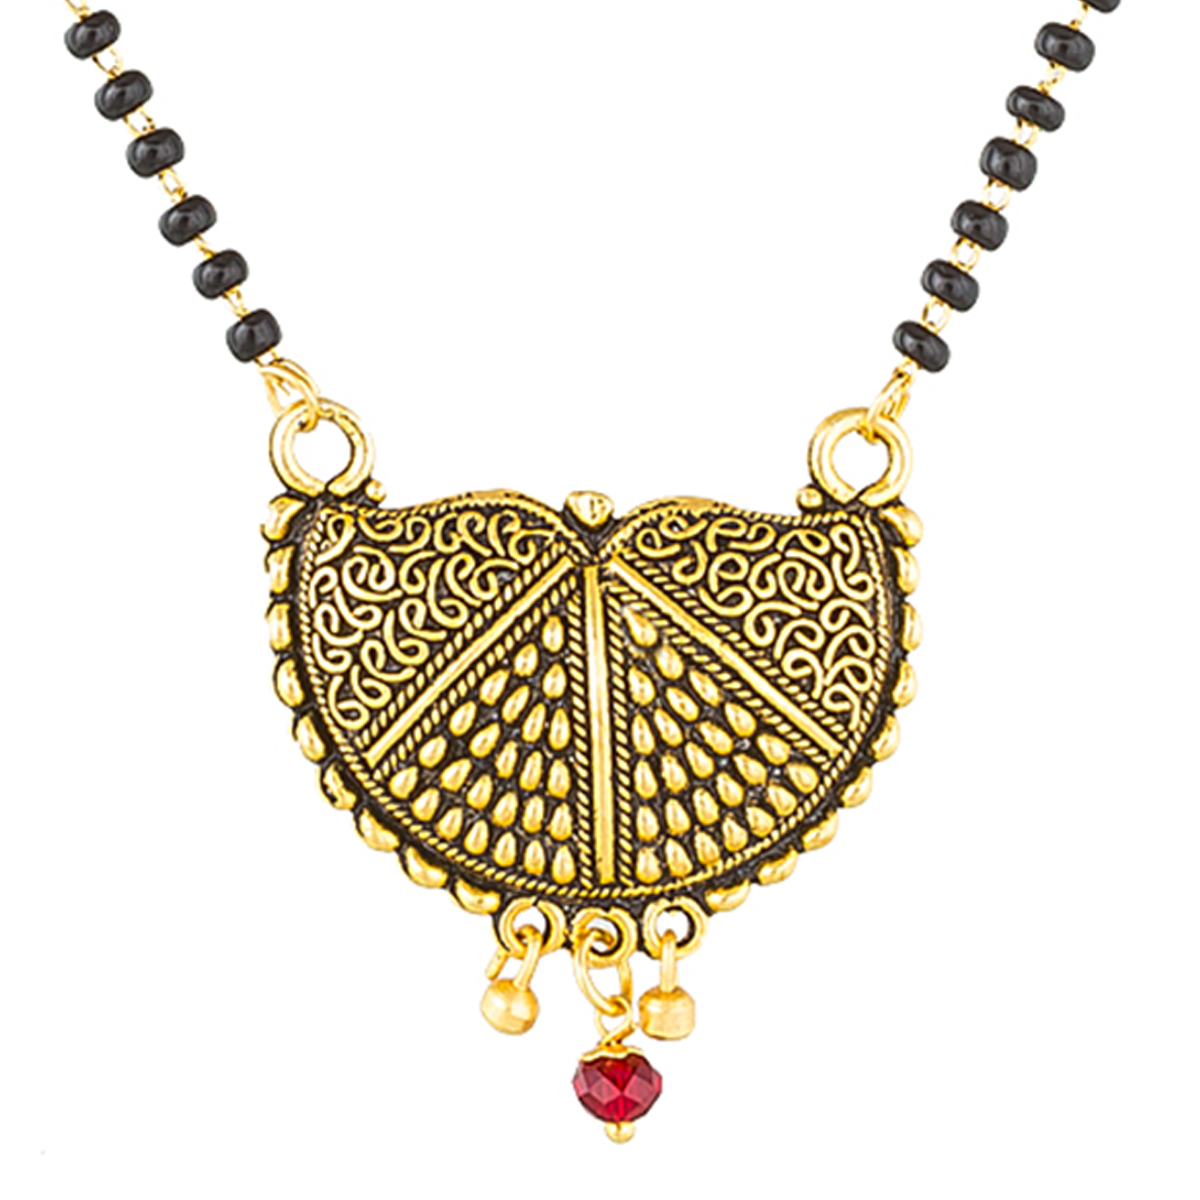 Ravishing Golden Colored Stone Work Mix Metal Mangalsutra